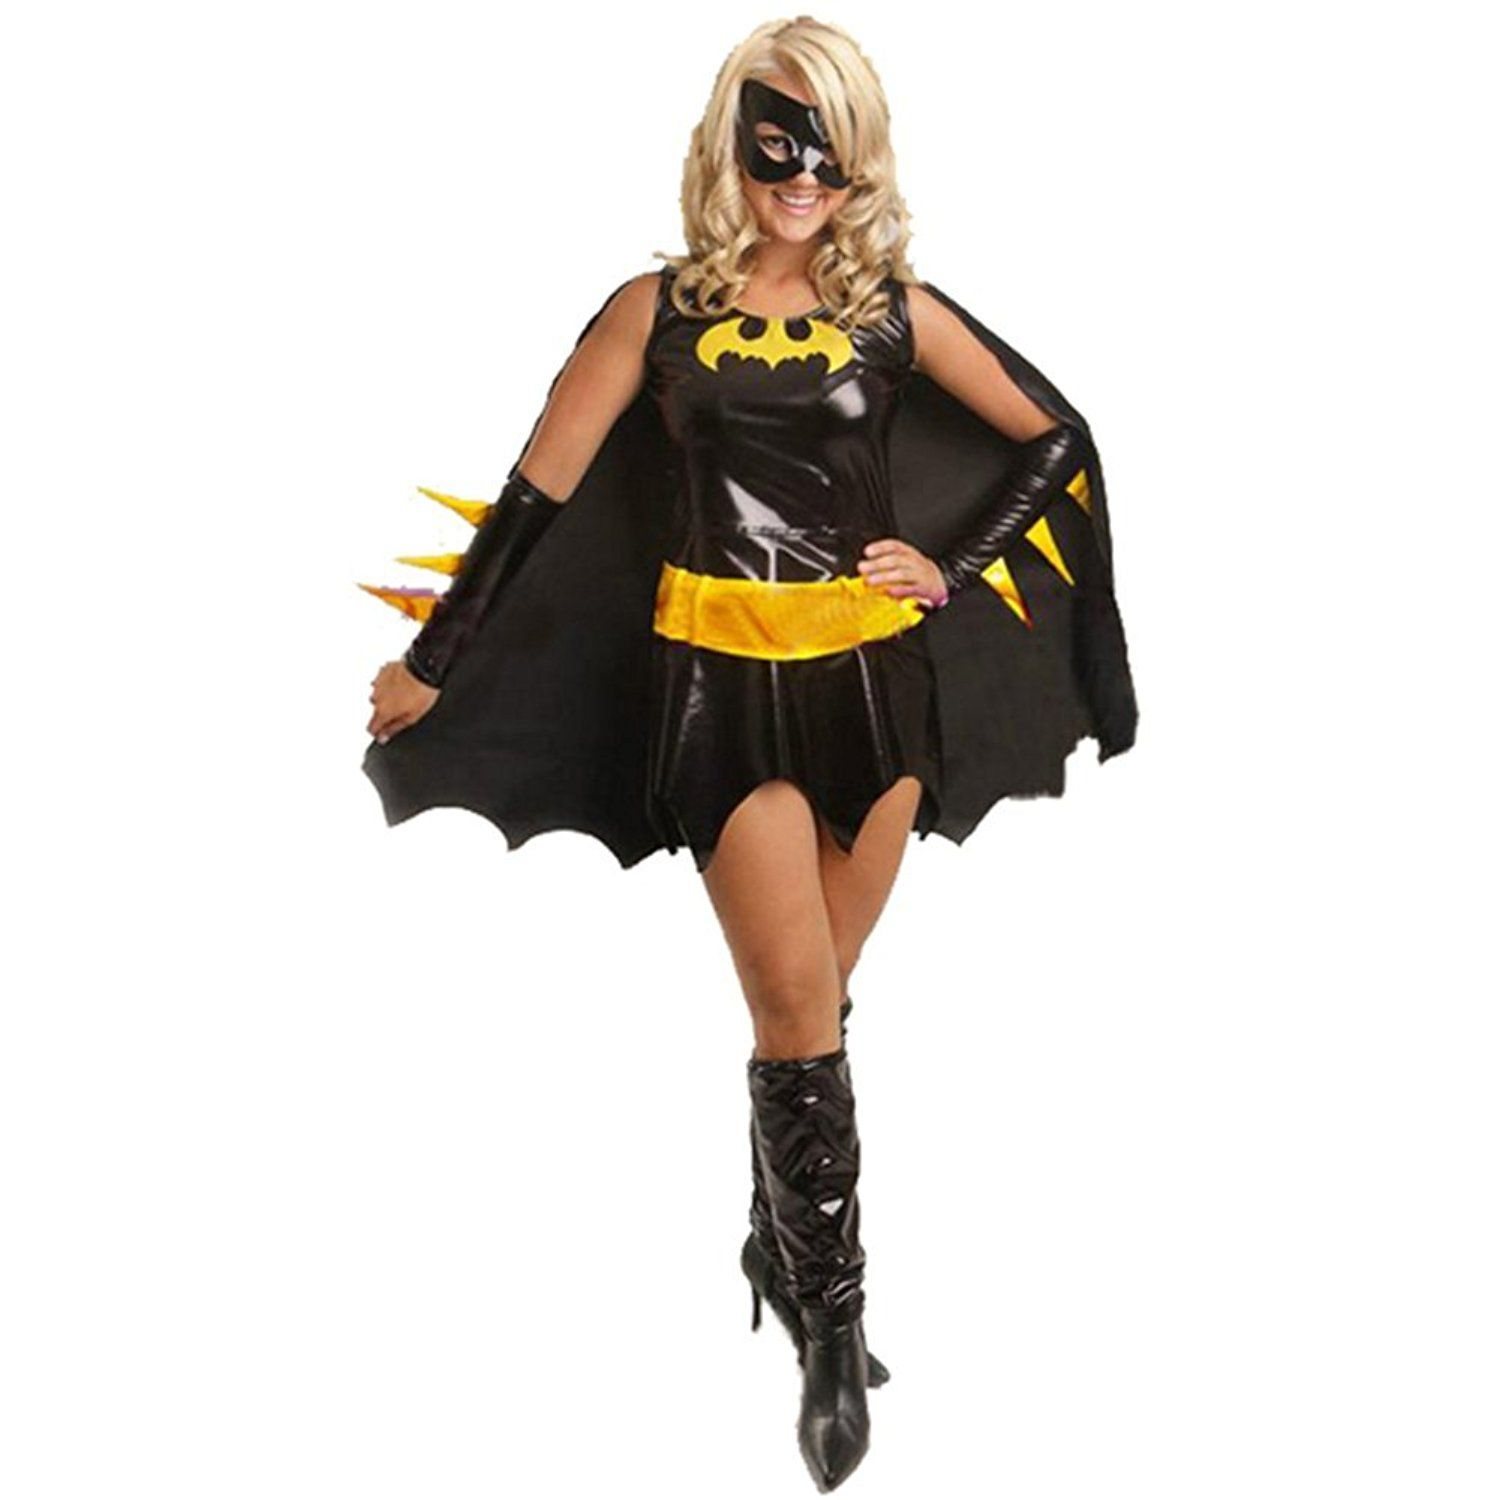 Amazon.com Batwoman Costume Cosplay Halloween Party Costume for Woman XCOSER Clothing  sc 1 st  Pinterest & Batwoman Costume Cosplay Halloween Party Costume for Woman XCOSER ...